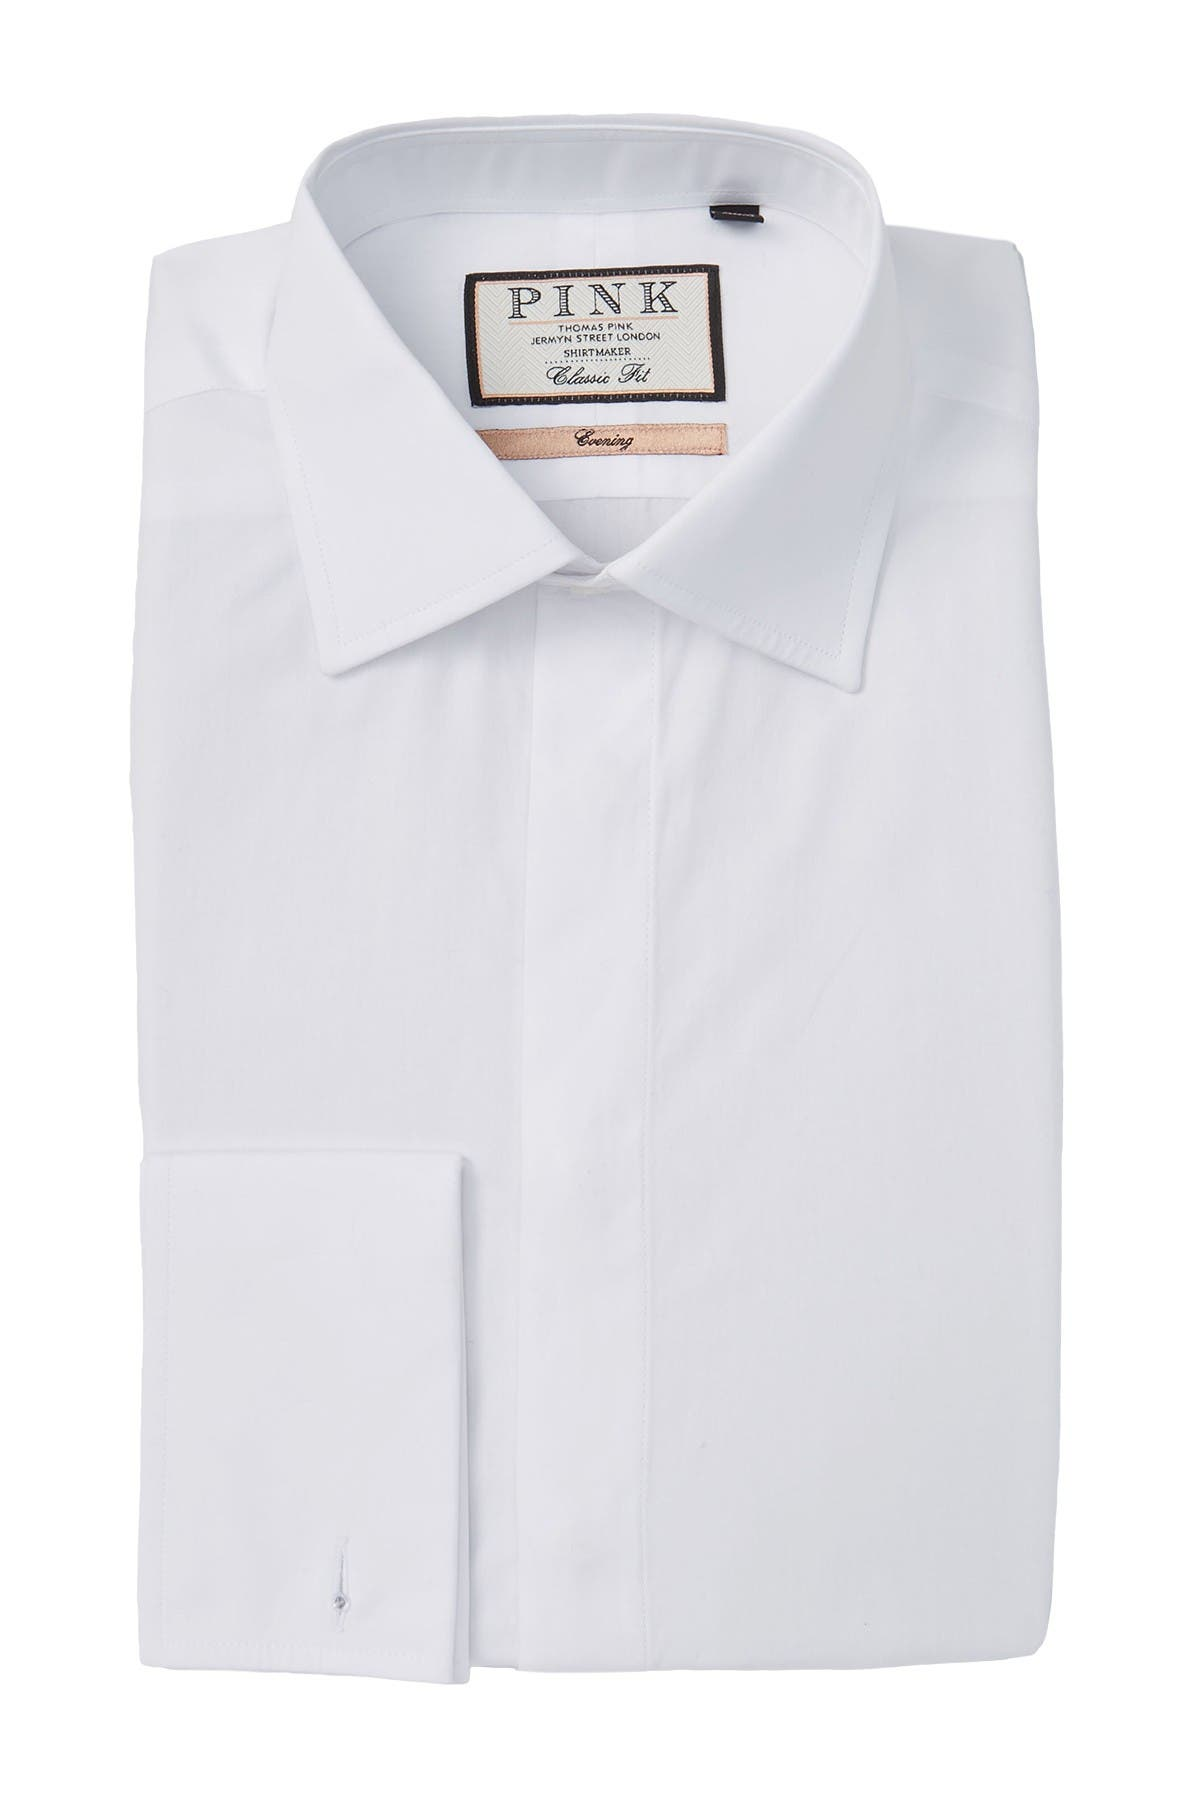 Image of THOMAS PINK Evening Classic Fit Dress Shirt